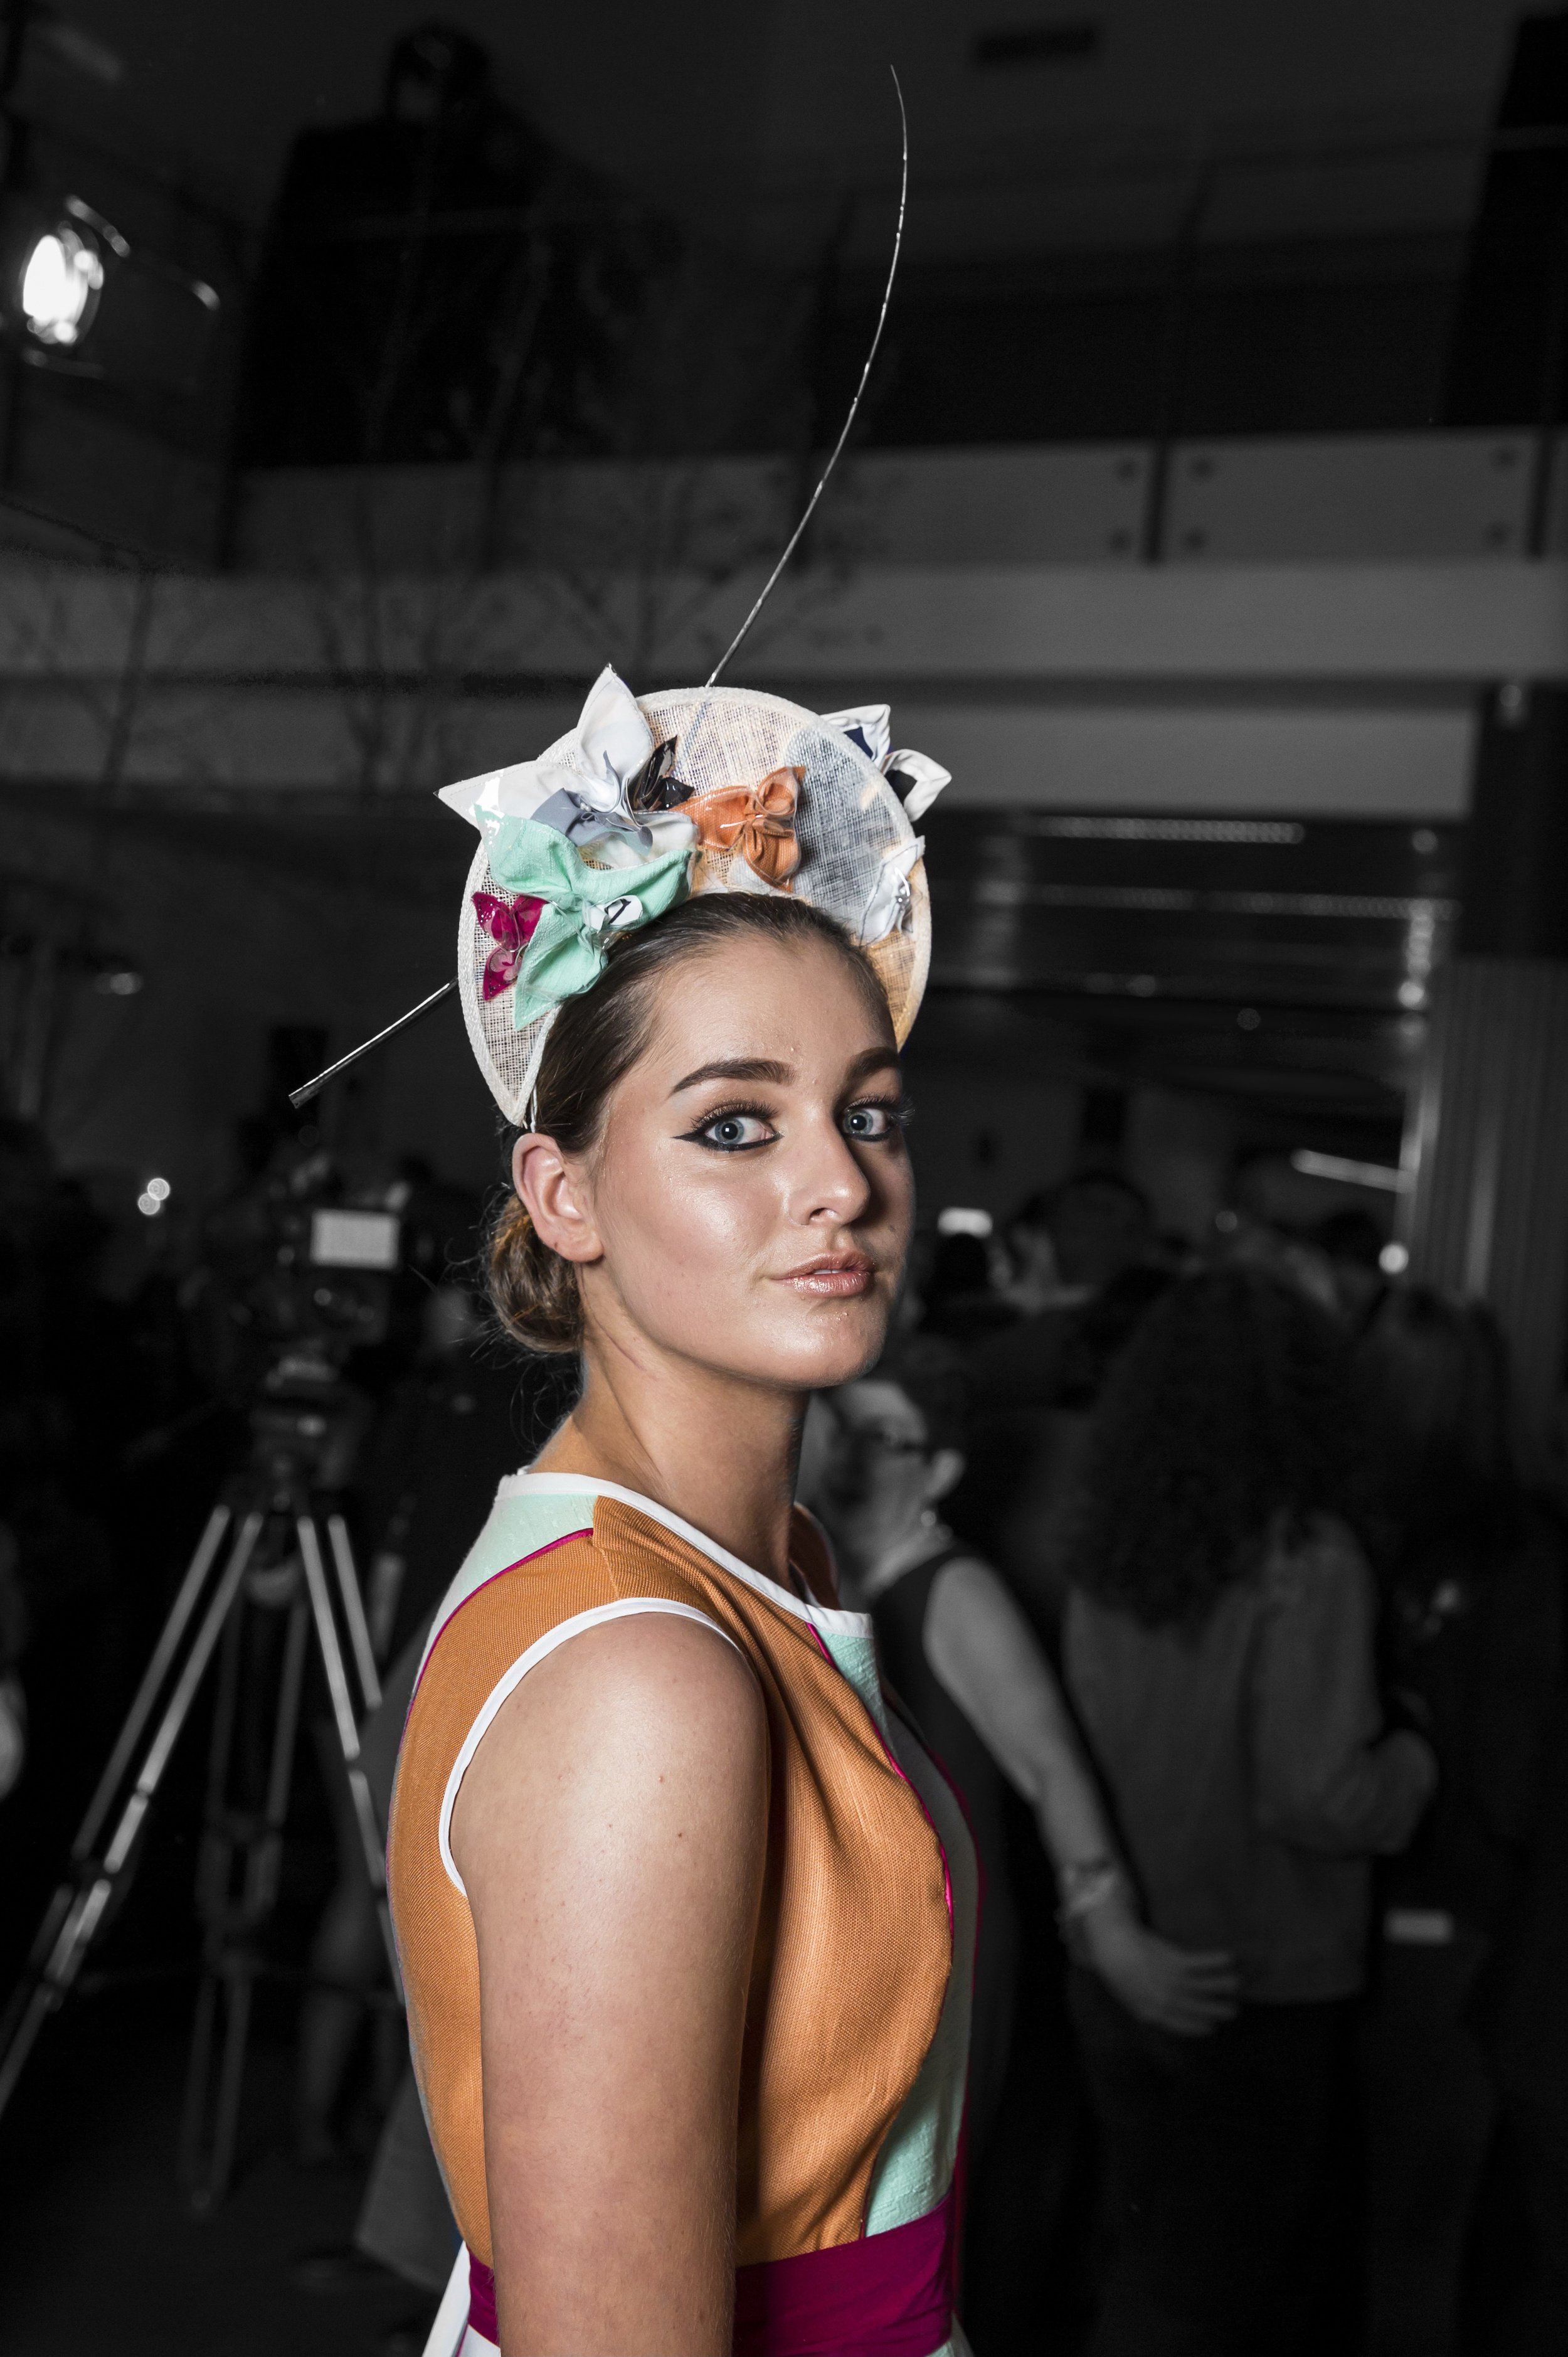 Studio Vita Photography, Hair/MAU/Model - Fashfest